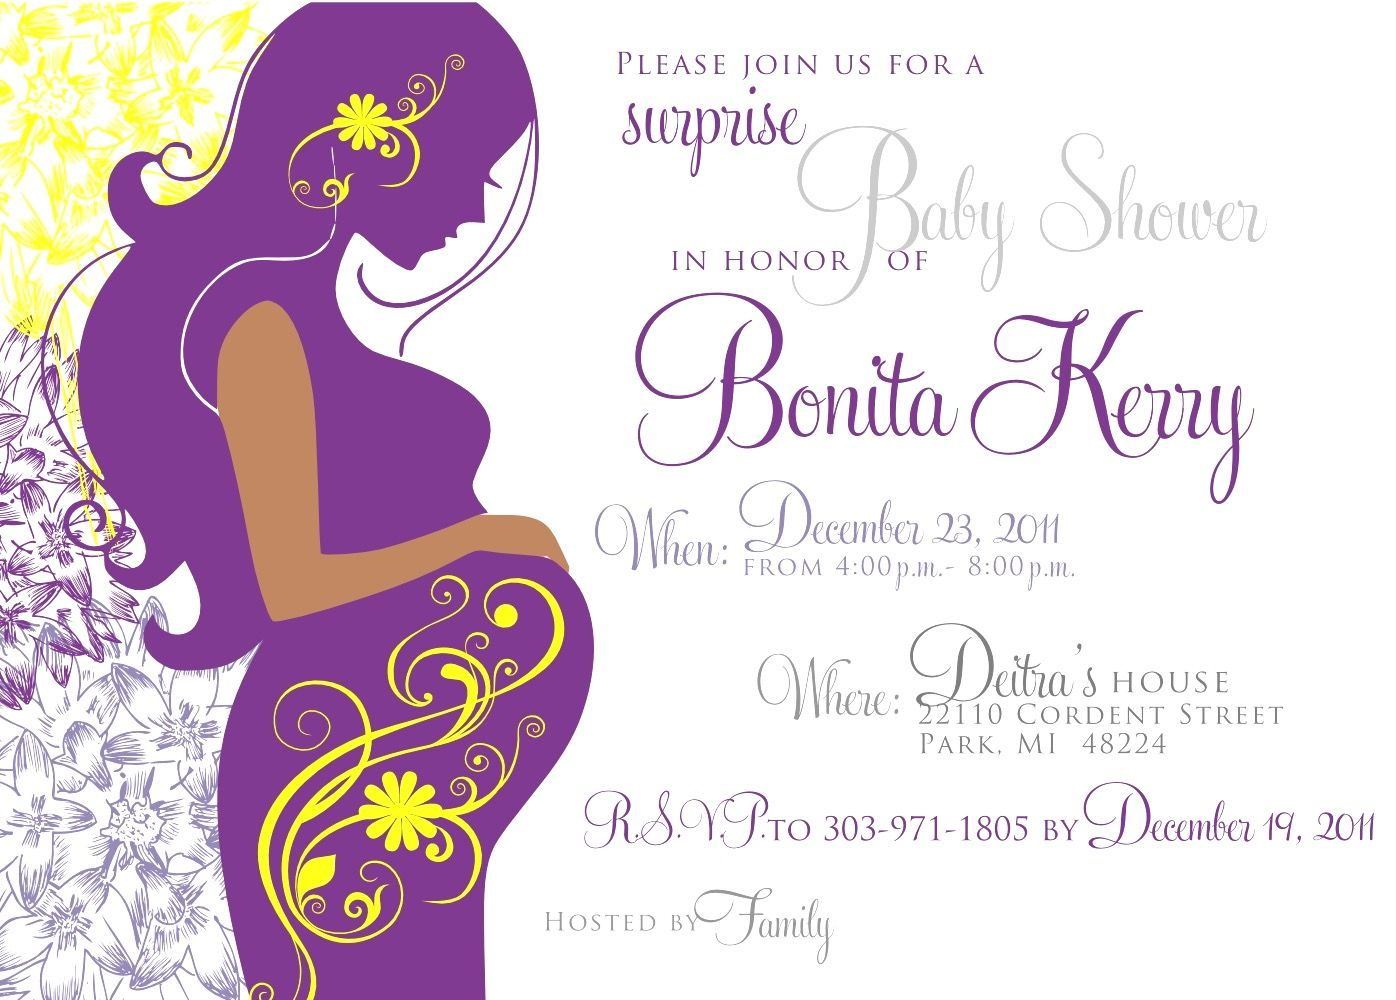 Baby Shower Invitations For Word Templates Alluring Free Baby Shower Invitation Templates For Word Www Awalkinhell .